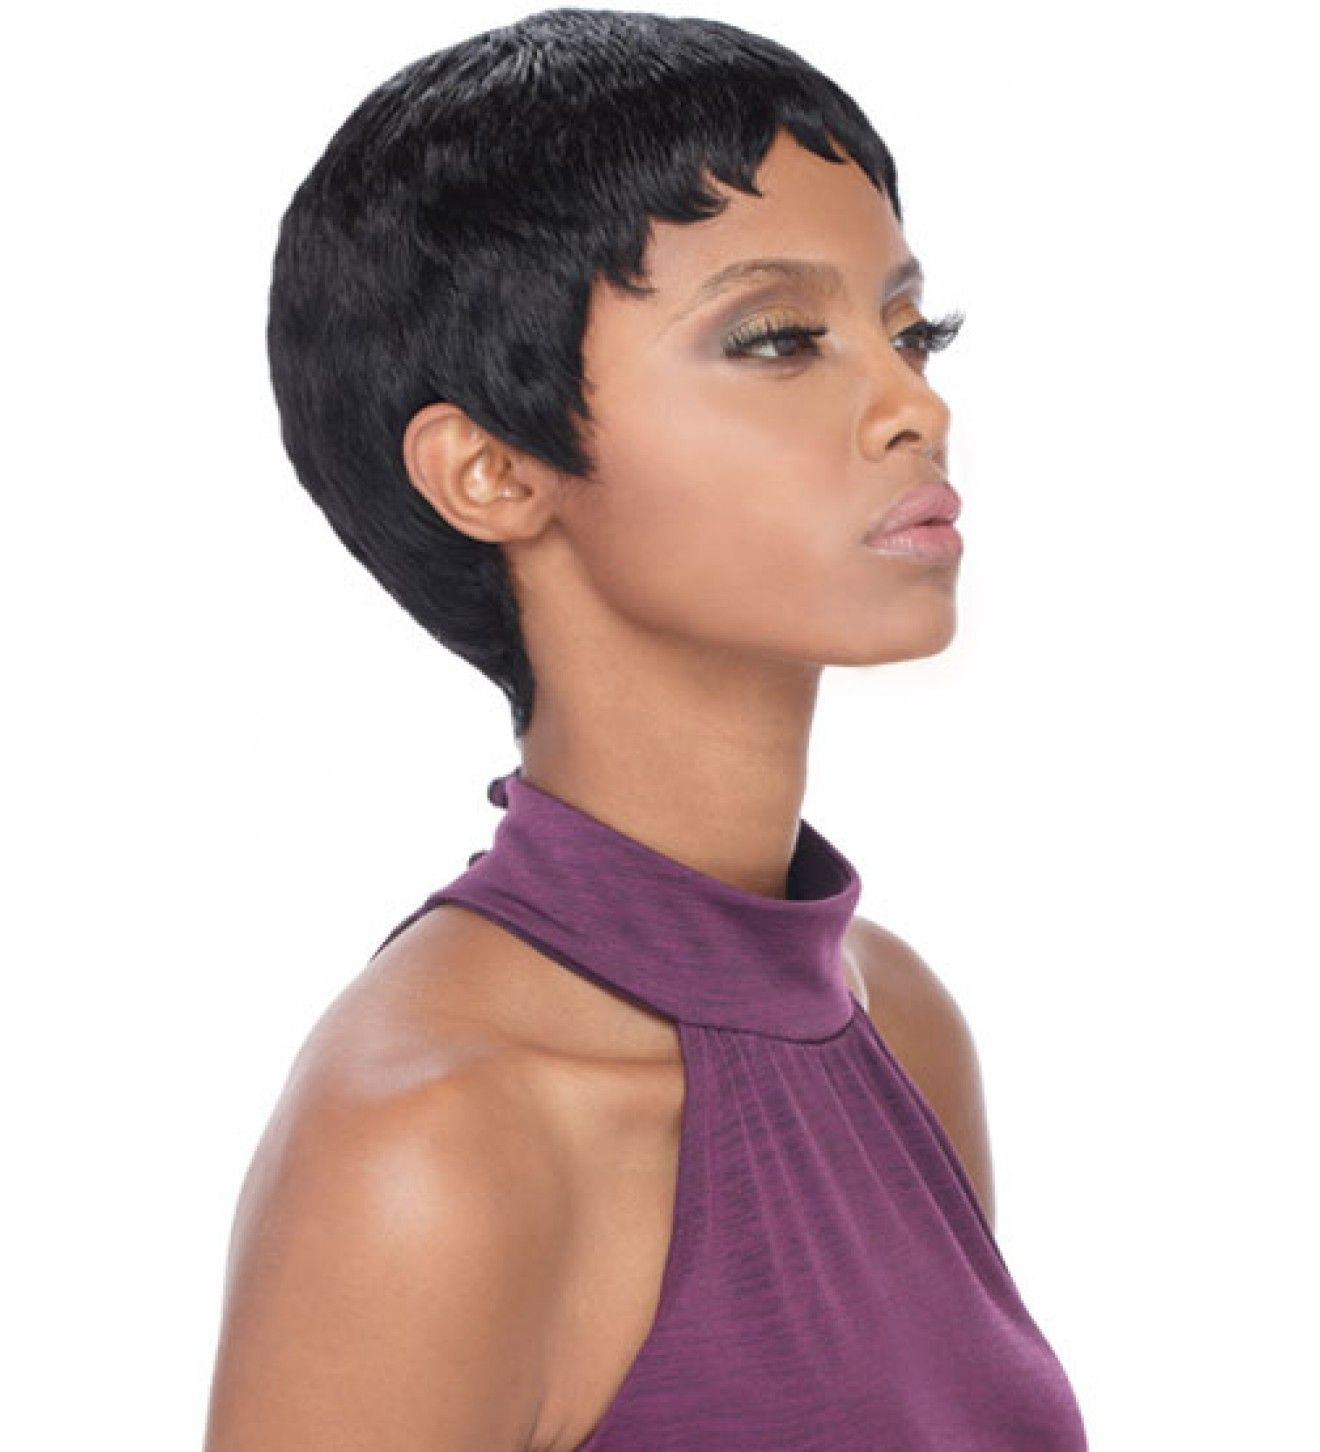 39++ Short afro wig hairstyles ideas in 2021